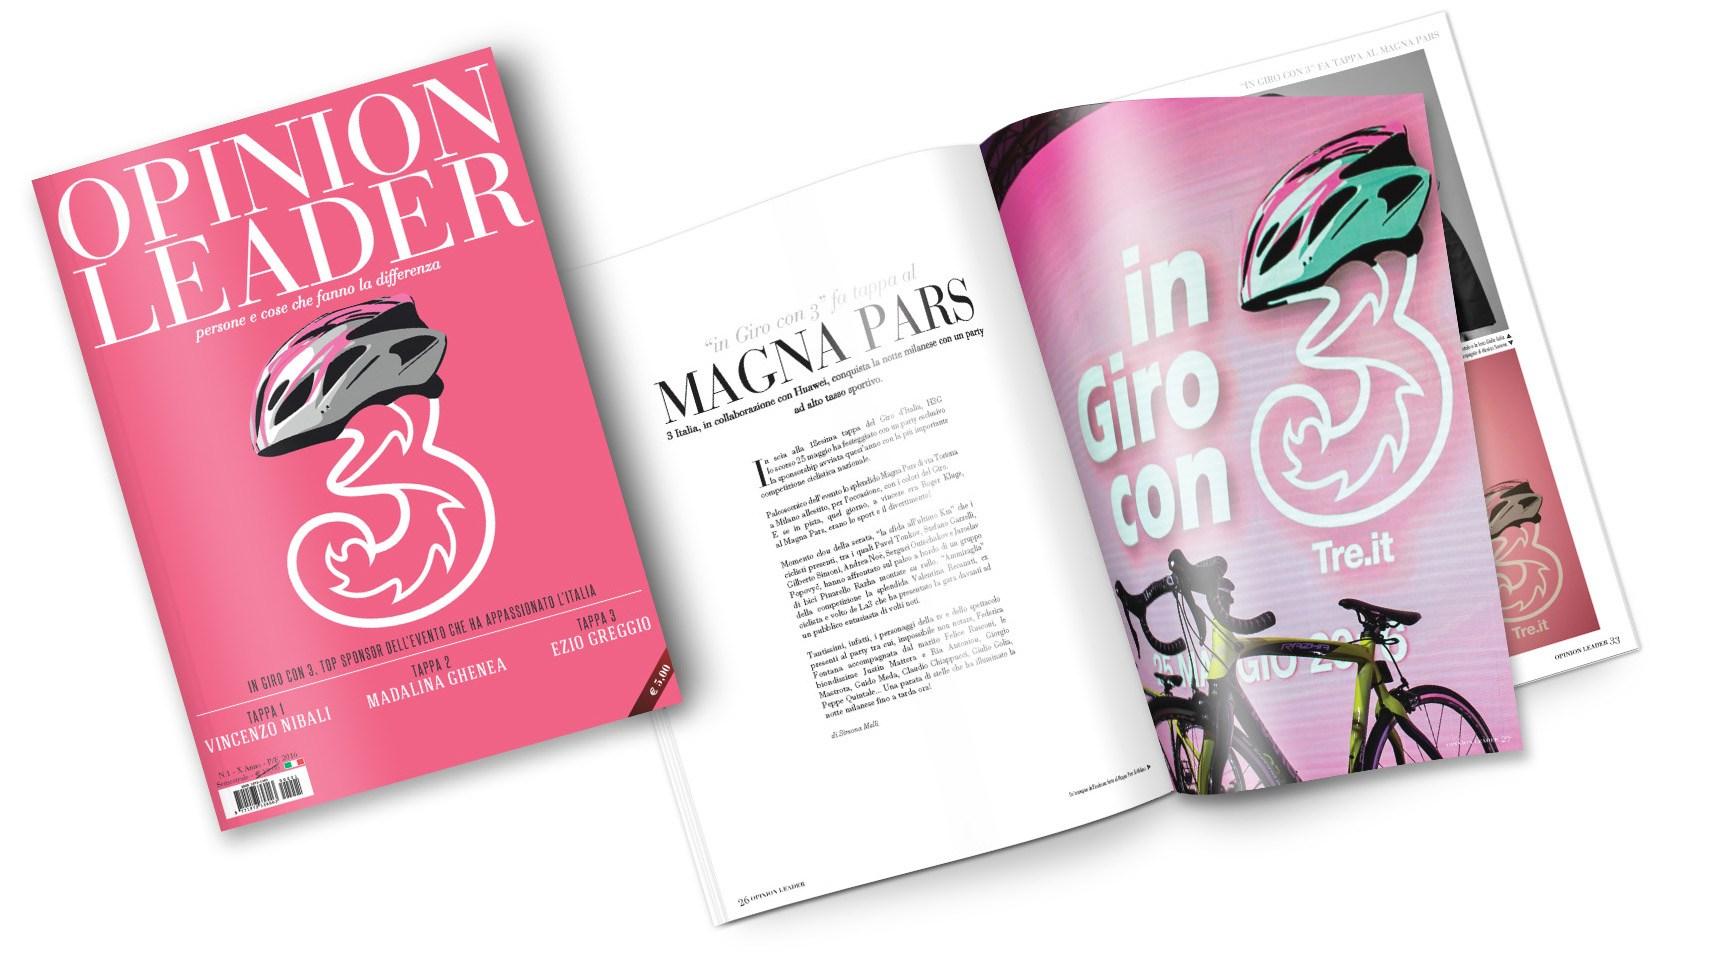 magazine-mockup-with-covernbackcover[1]